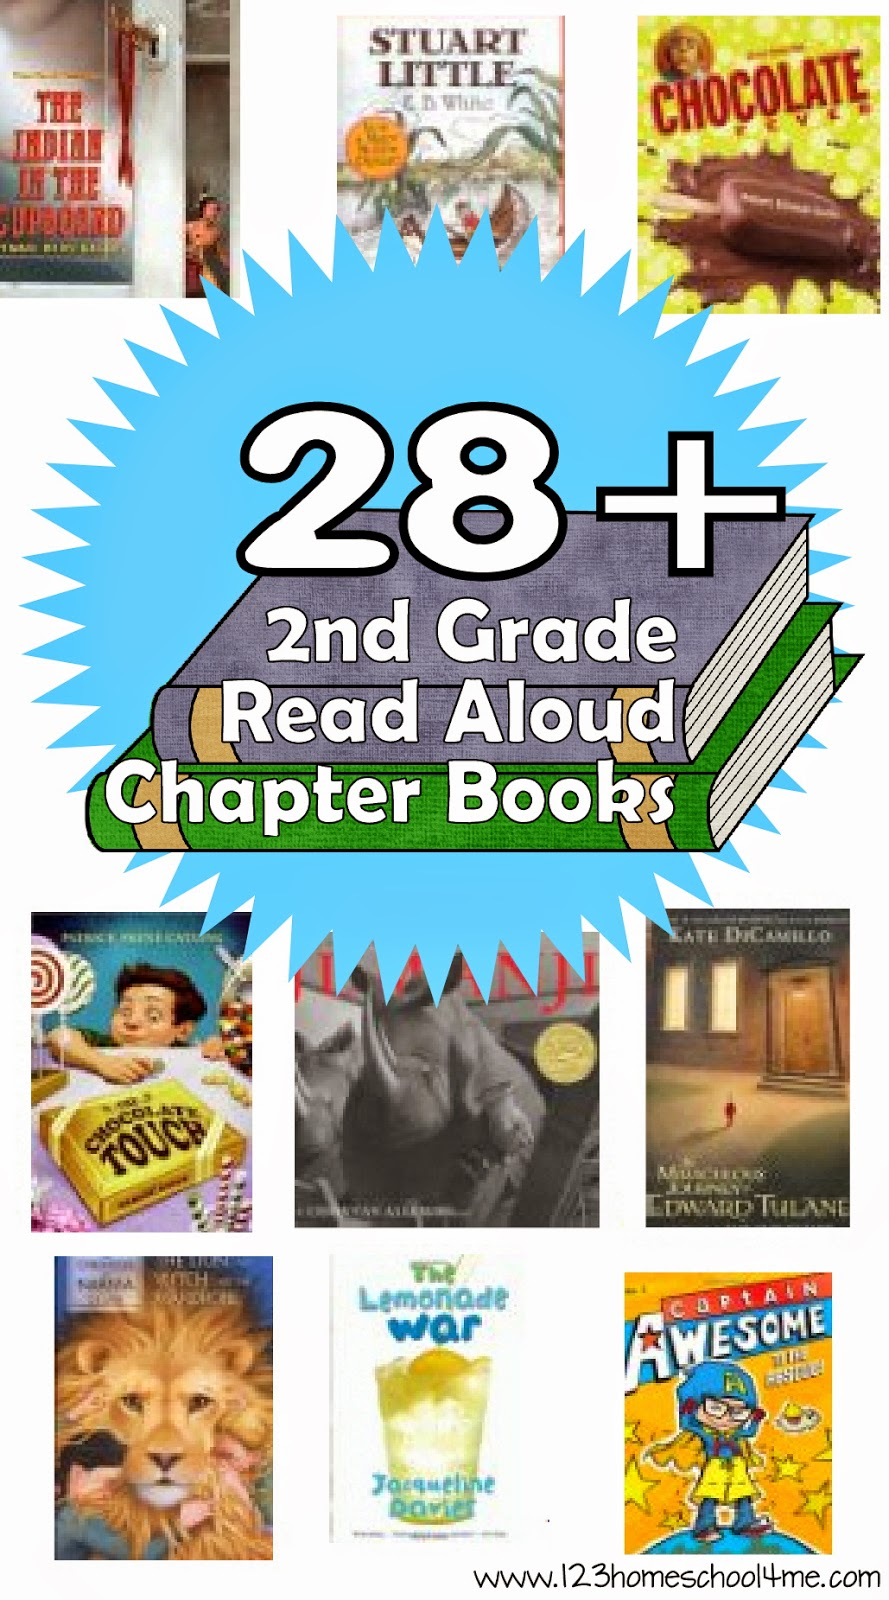 worksheet 2nd Grade Reading Books 2nd grade read aloud chapter books